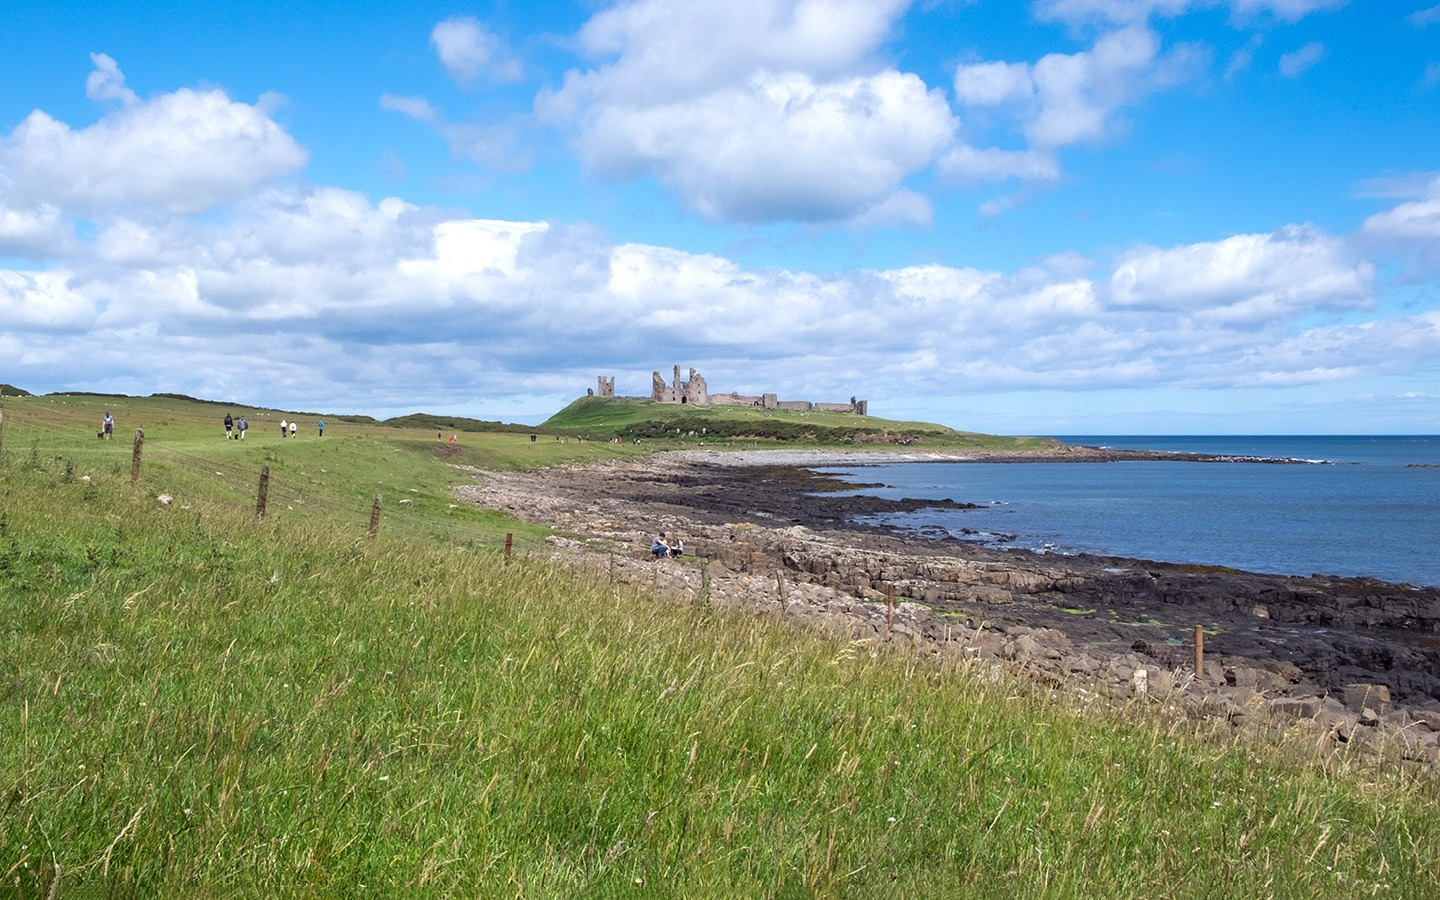 Dunstanburgh Castle in Alnwick, Northumberland, England